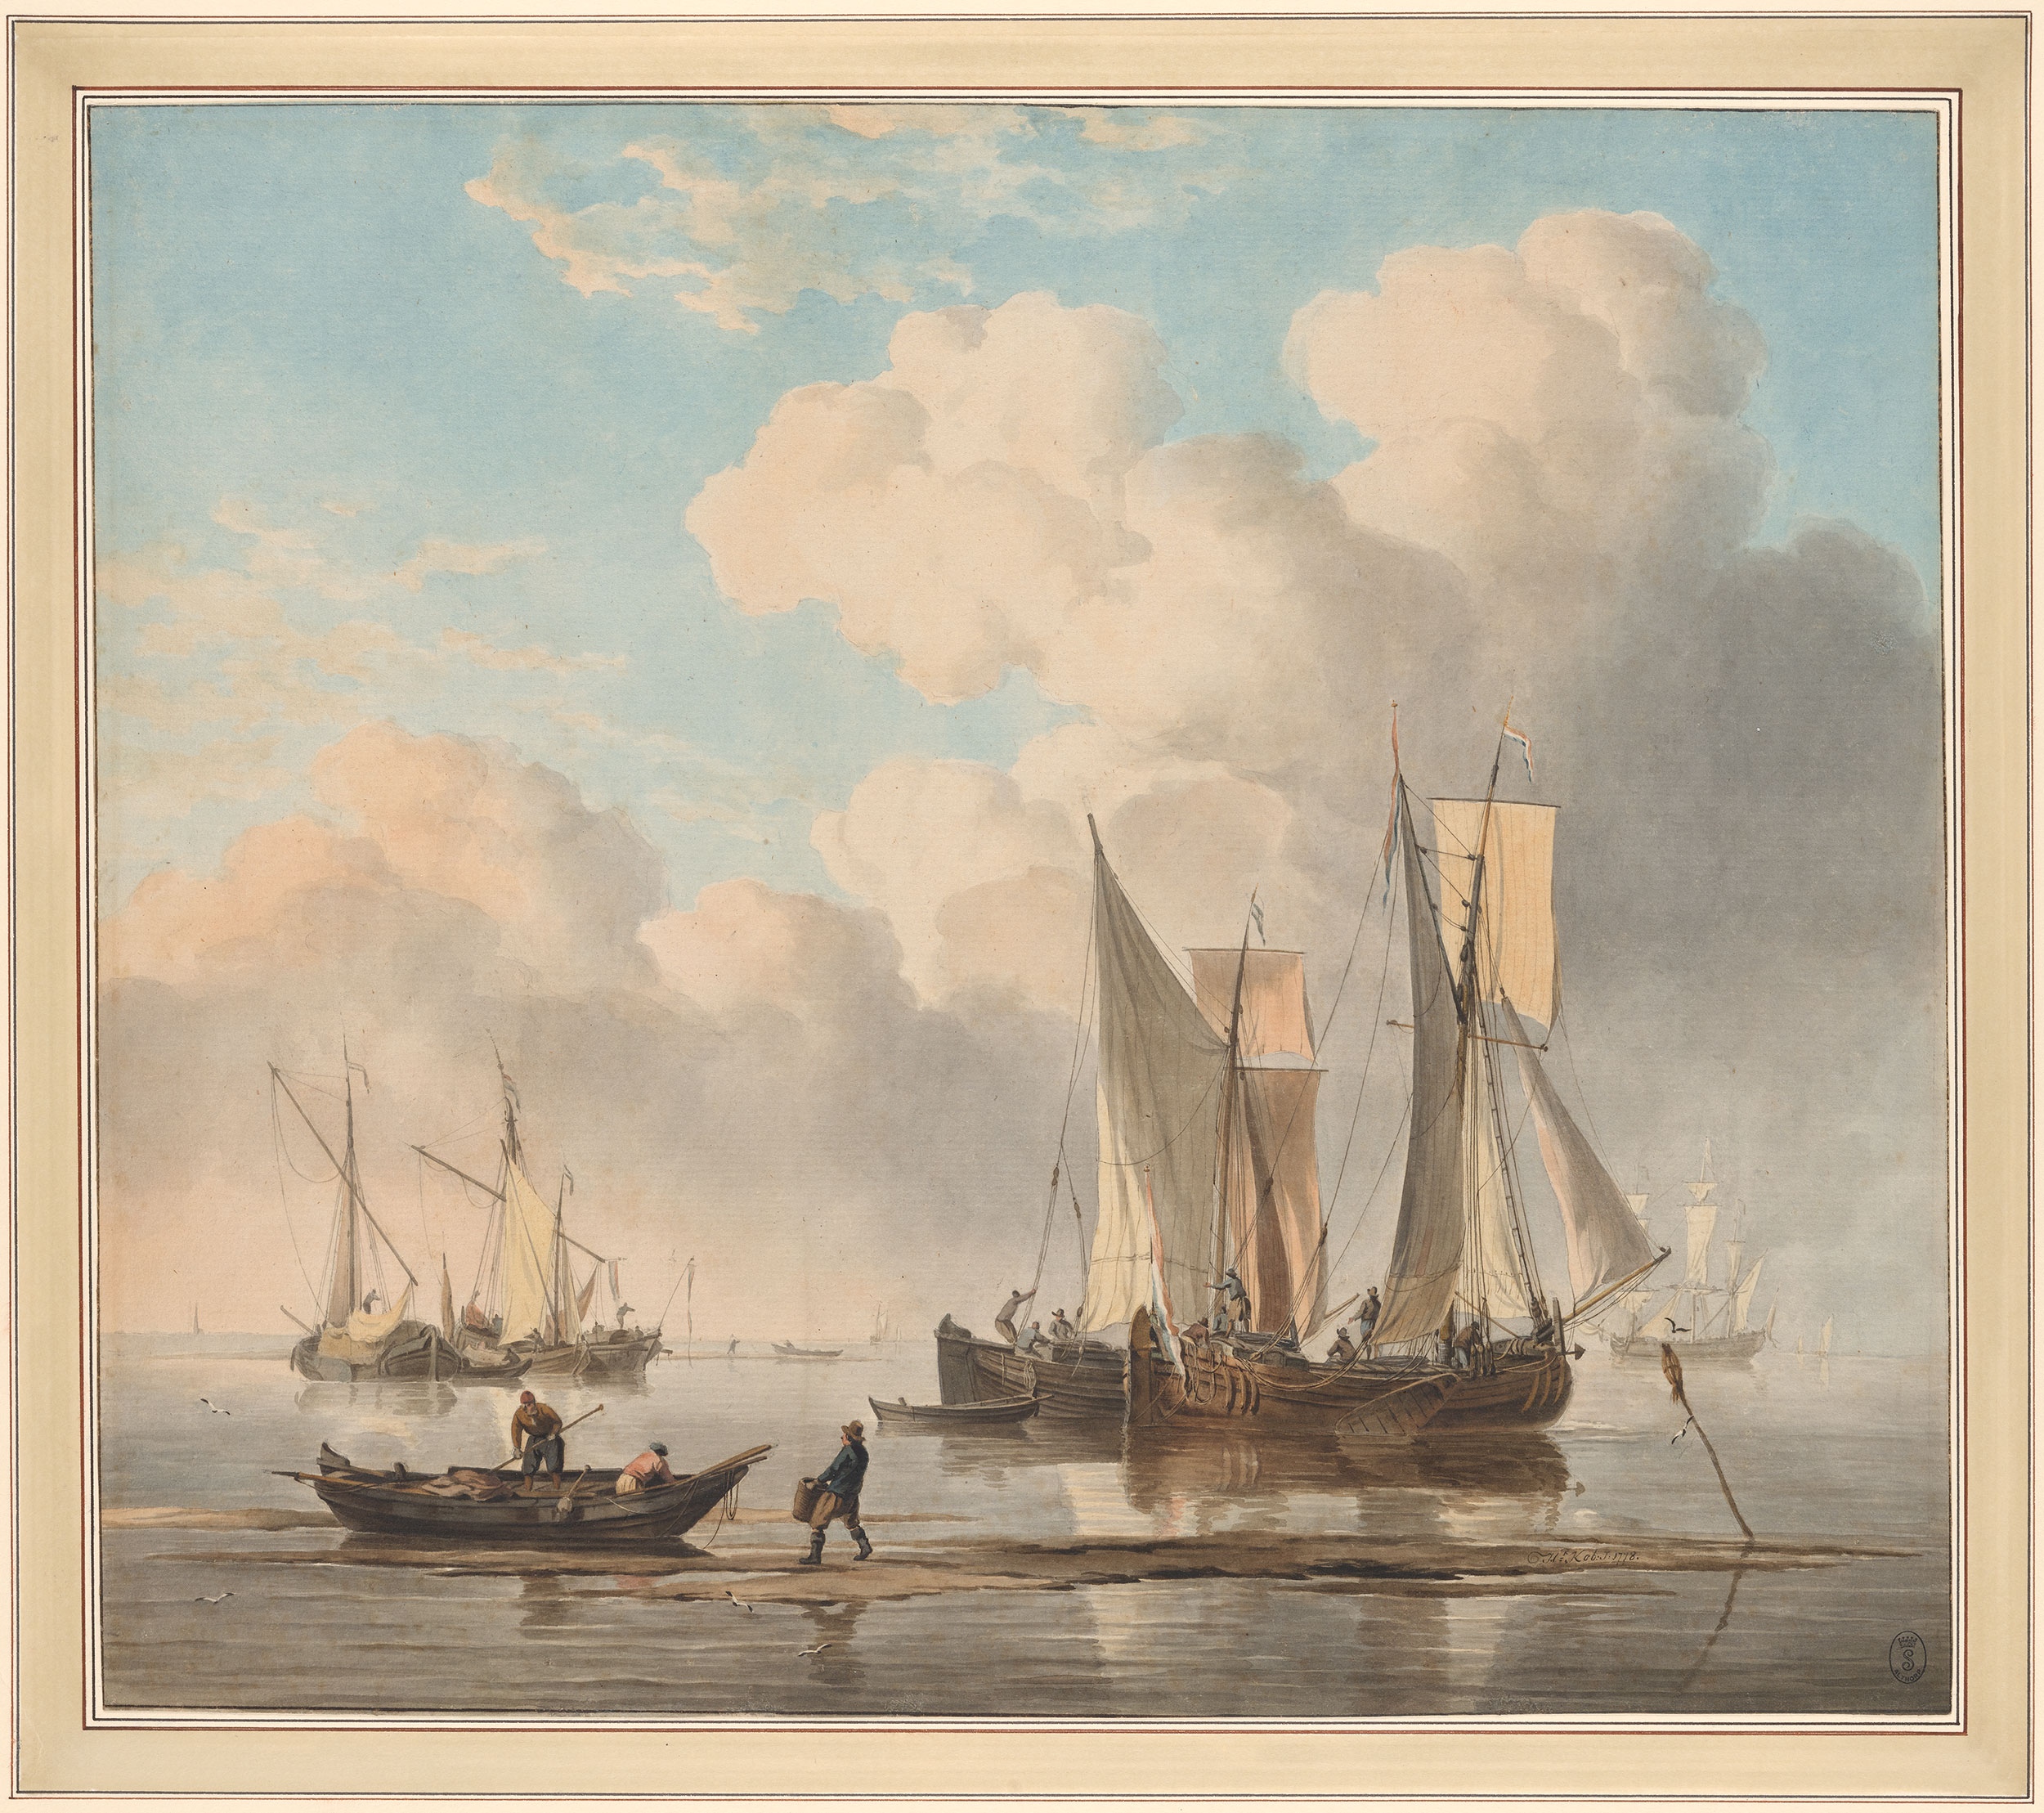 Shipping Scene near the Shore, by Hendrik Kobell, 1778